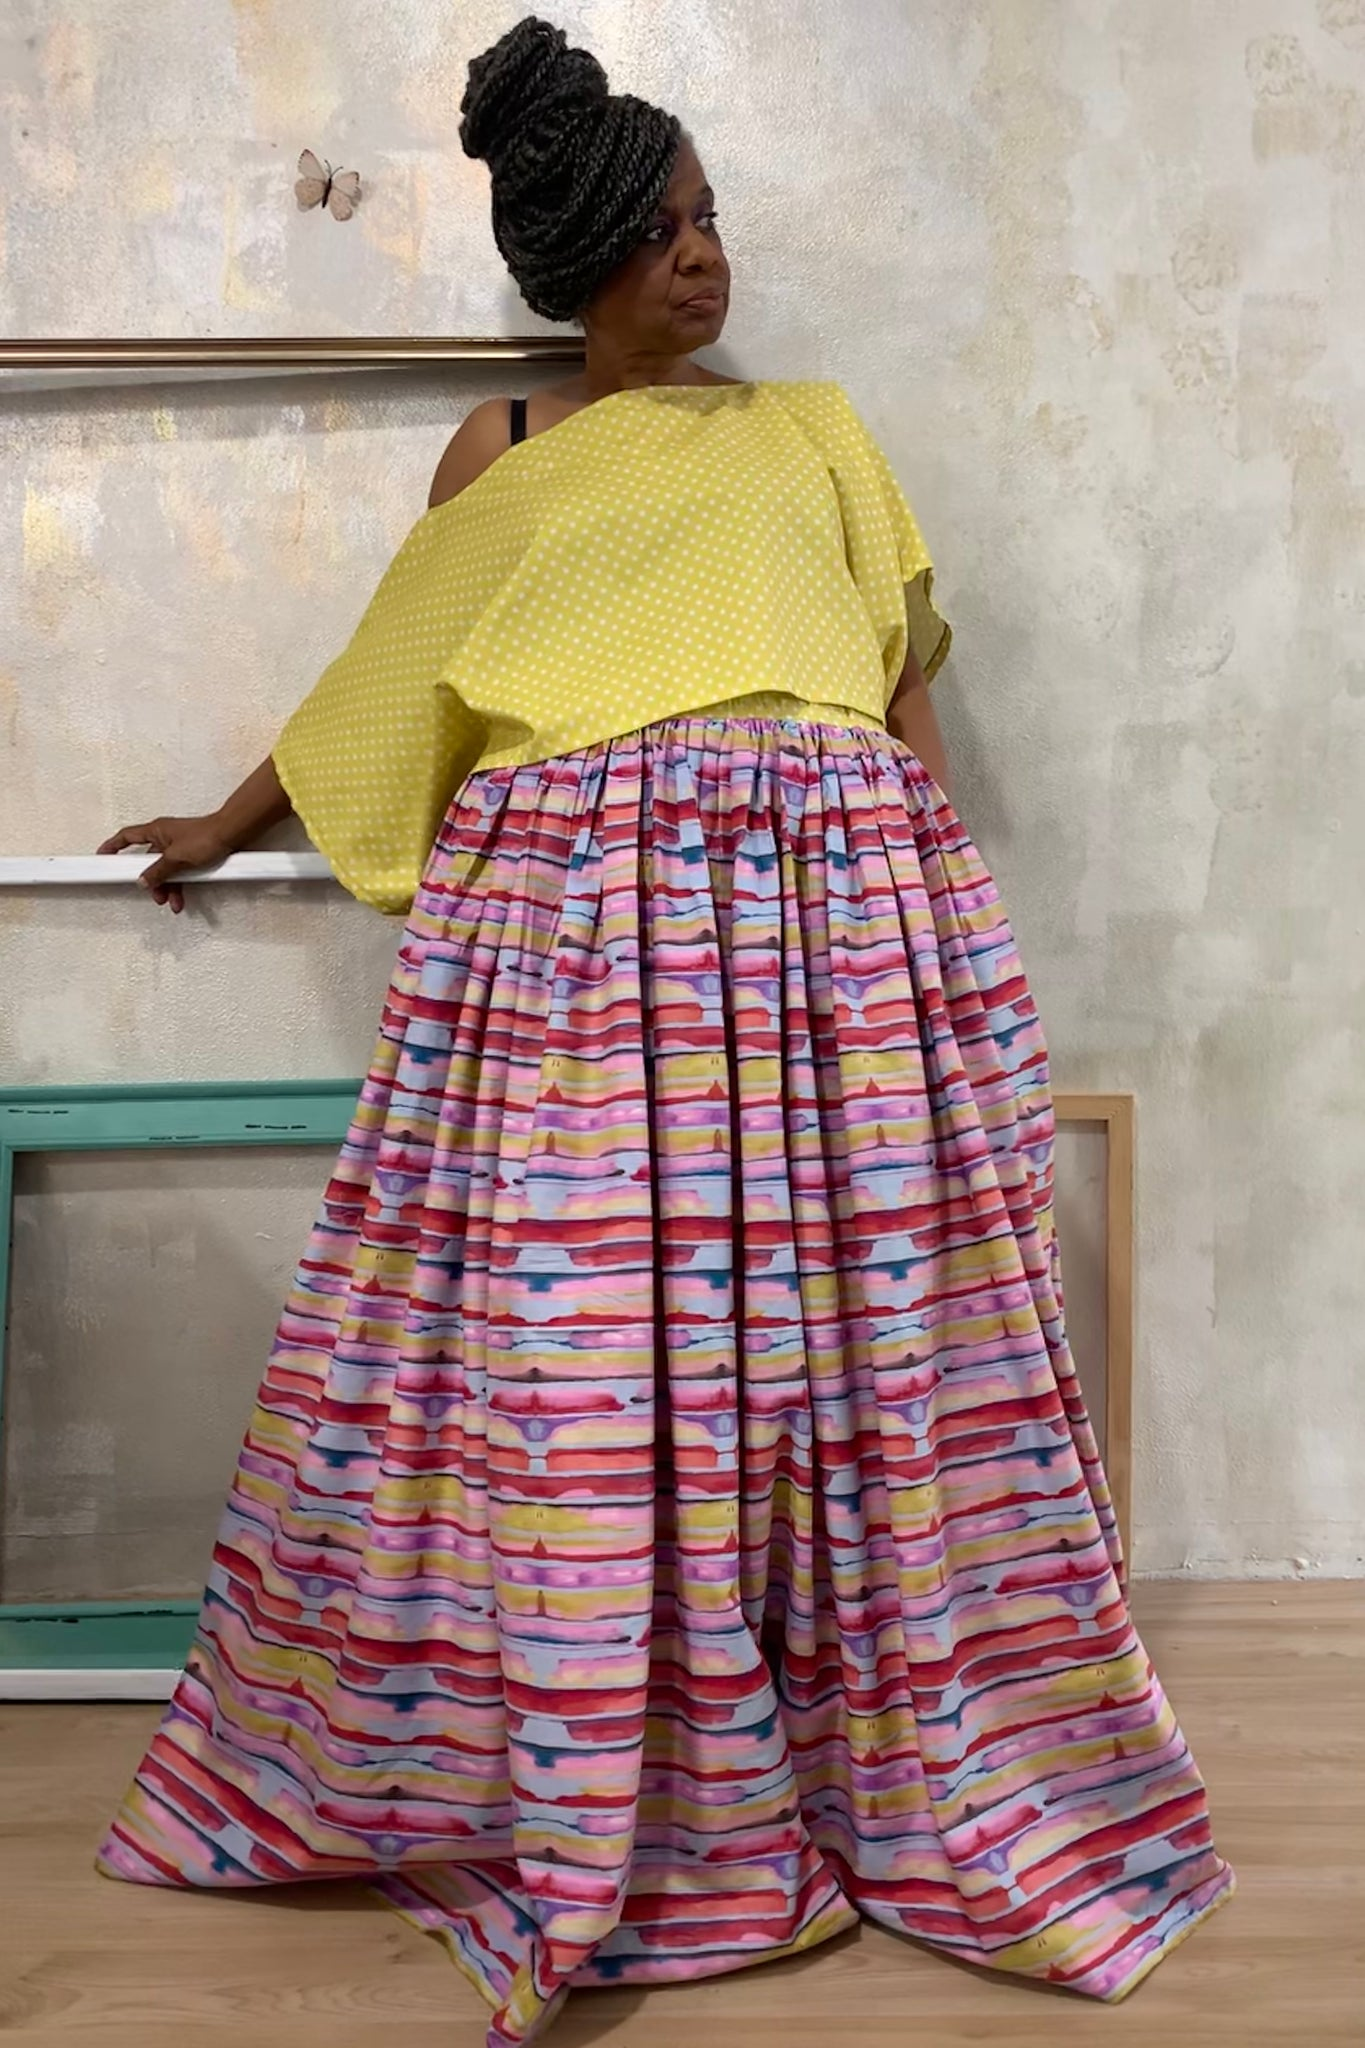 The Amazing Technicolor Dream Skirt